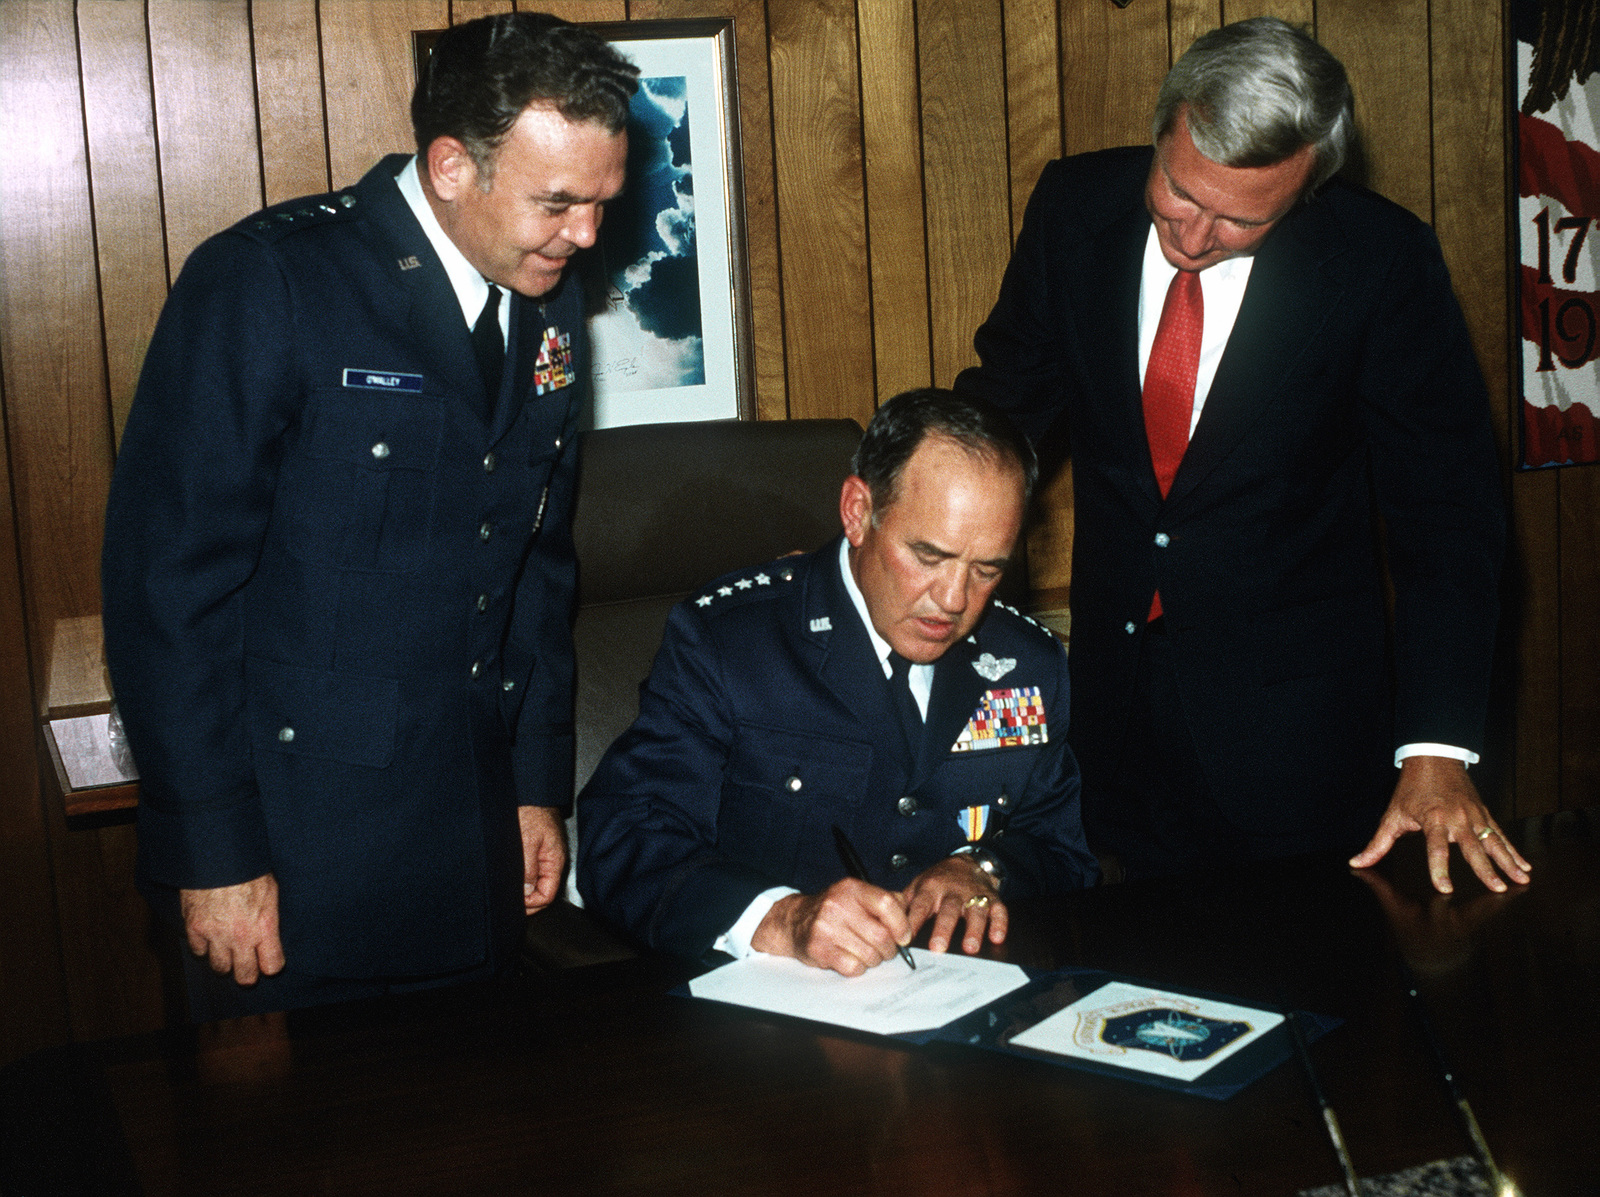 GEN James V. Hartinger signs his first special order as commander of the recently formed Space Command. Under Secretary of the Air Force Edward C. Aldridge Jr. and Air Force Vice-CHIEF of STAFF GEN Jerome E. O'Malley look on